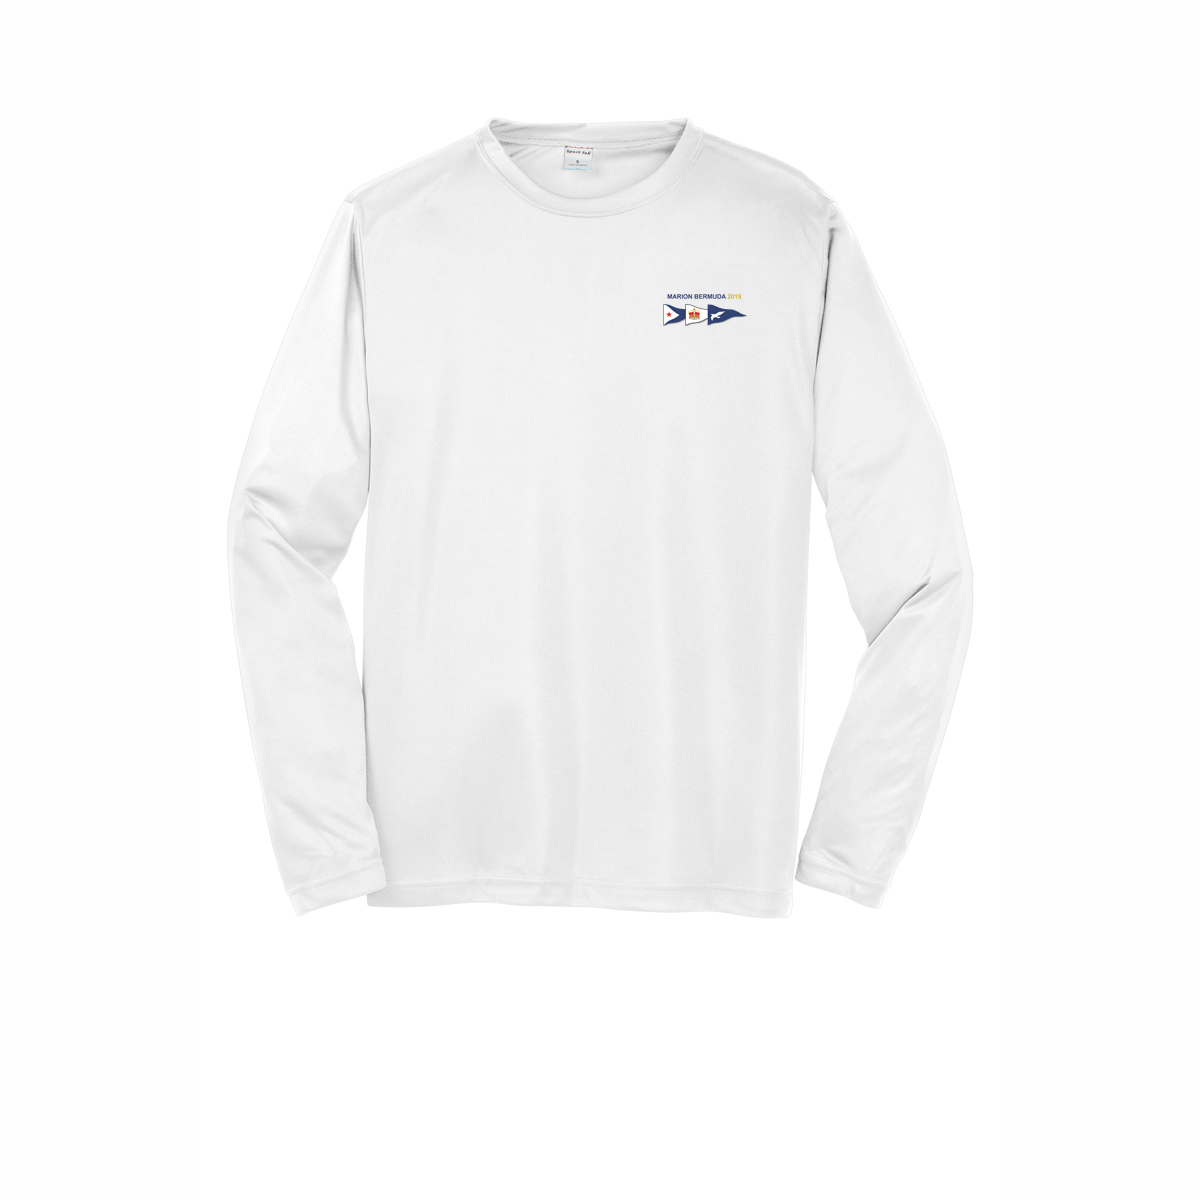 MBR  19 M'S L/S TECH TEE PAINTING